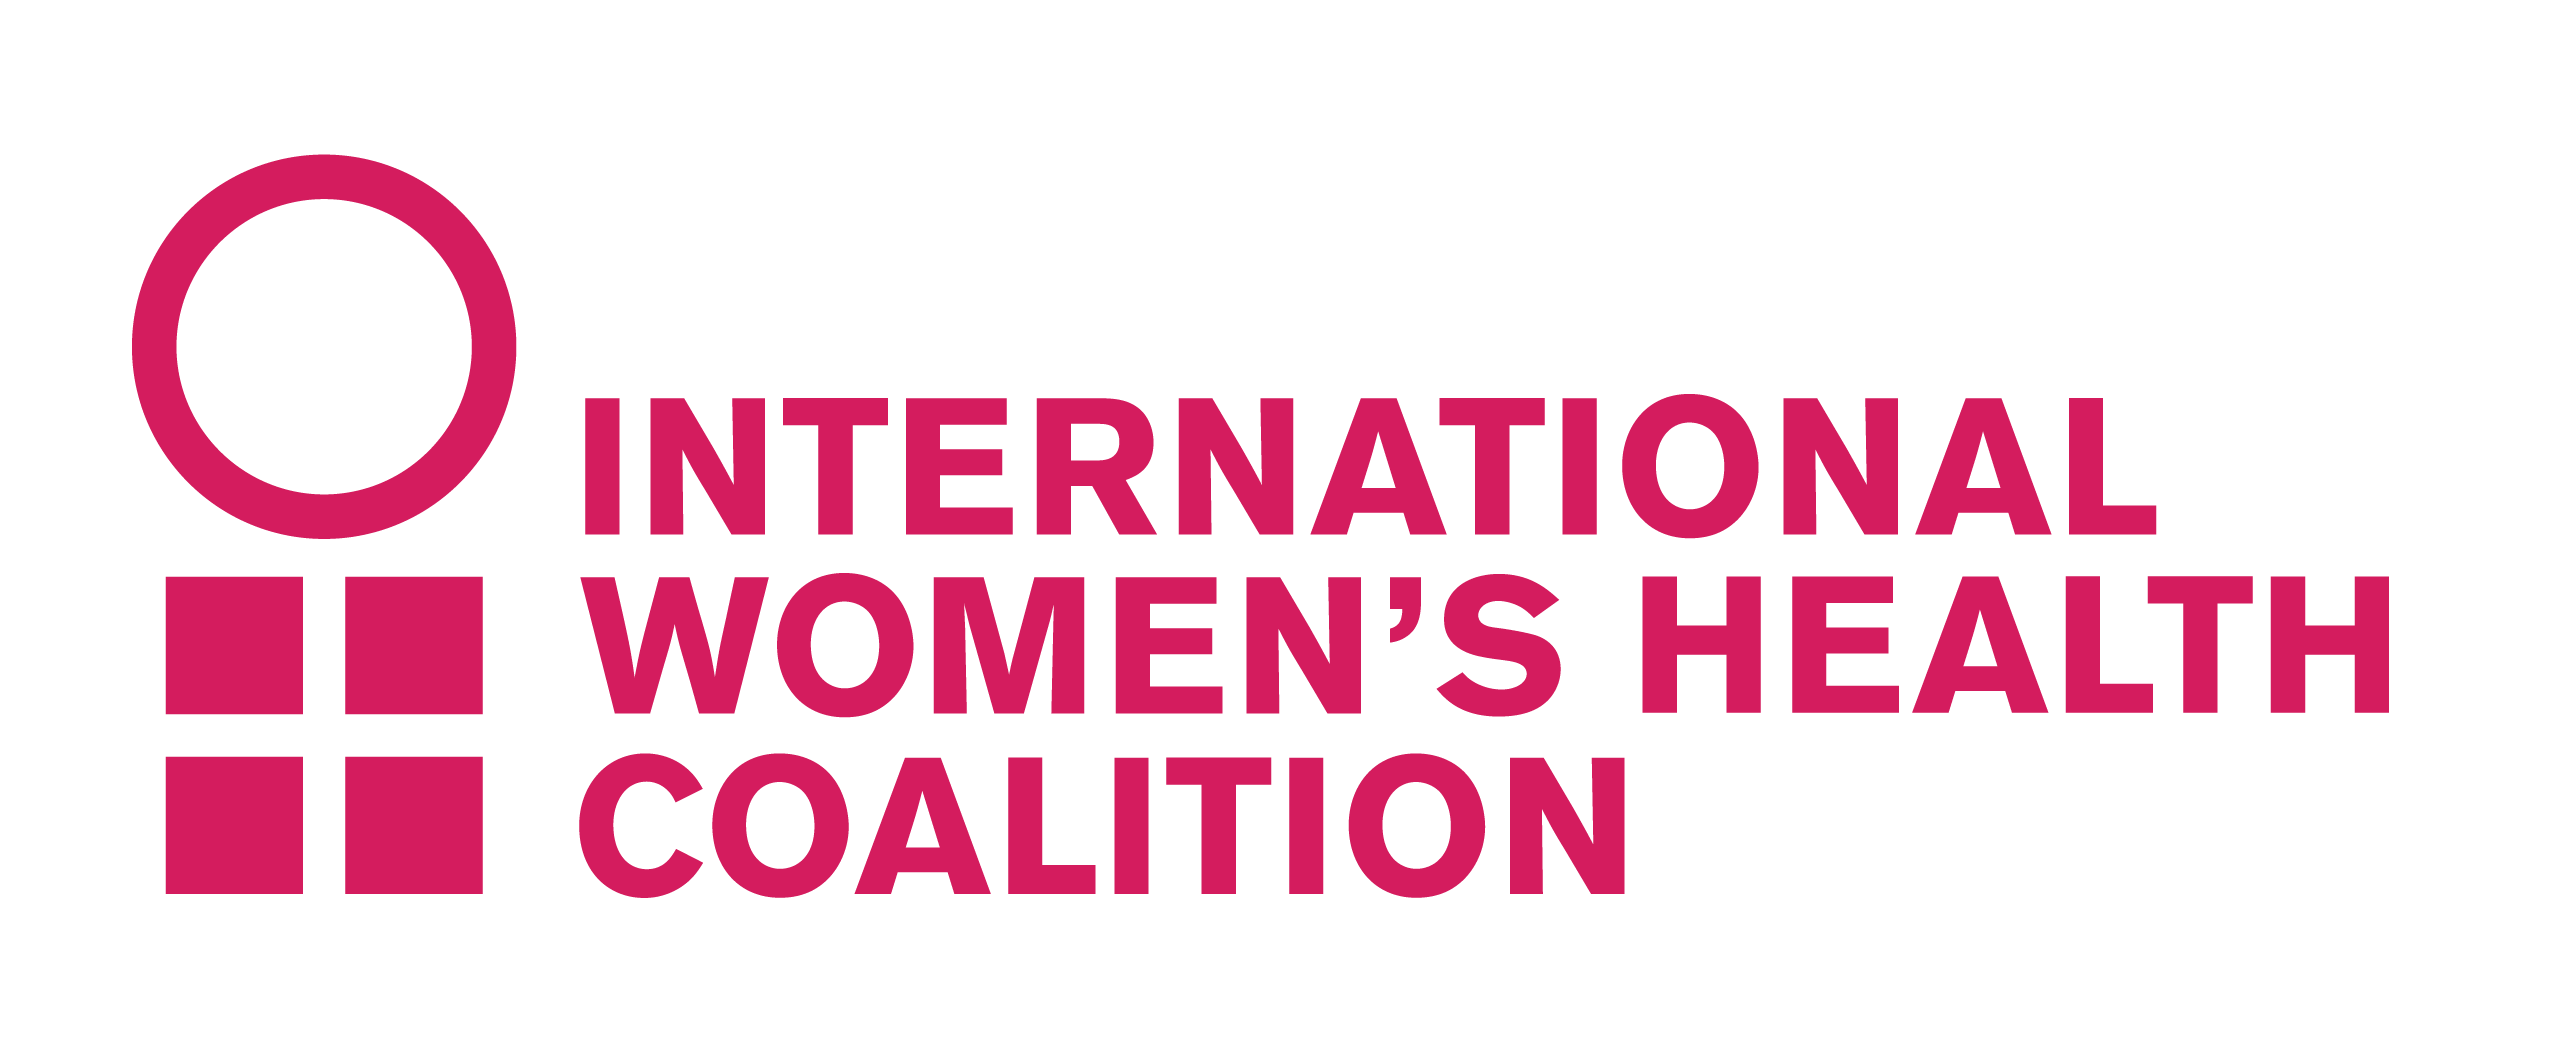 International Women's Health Coalition - logo